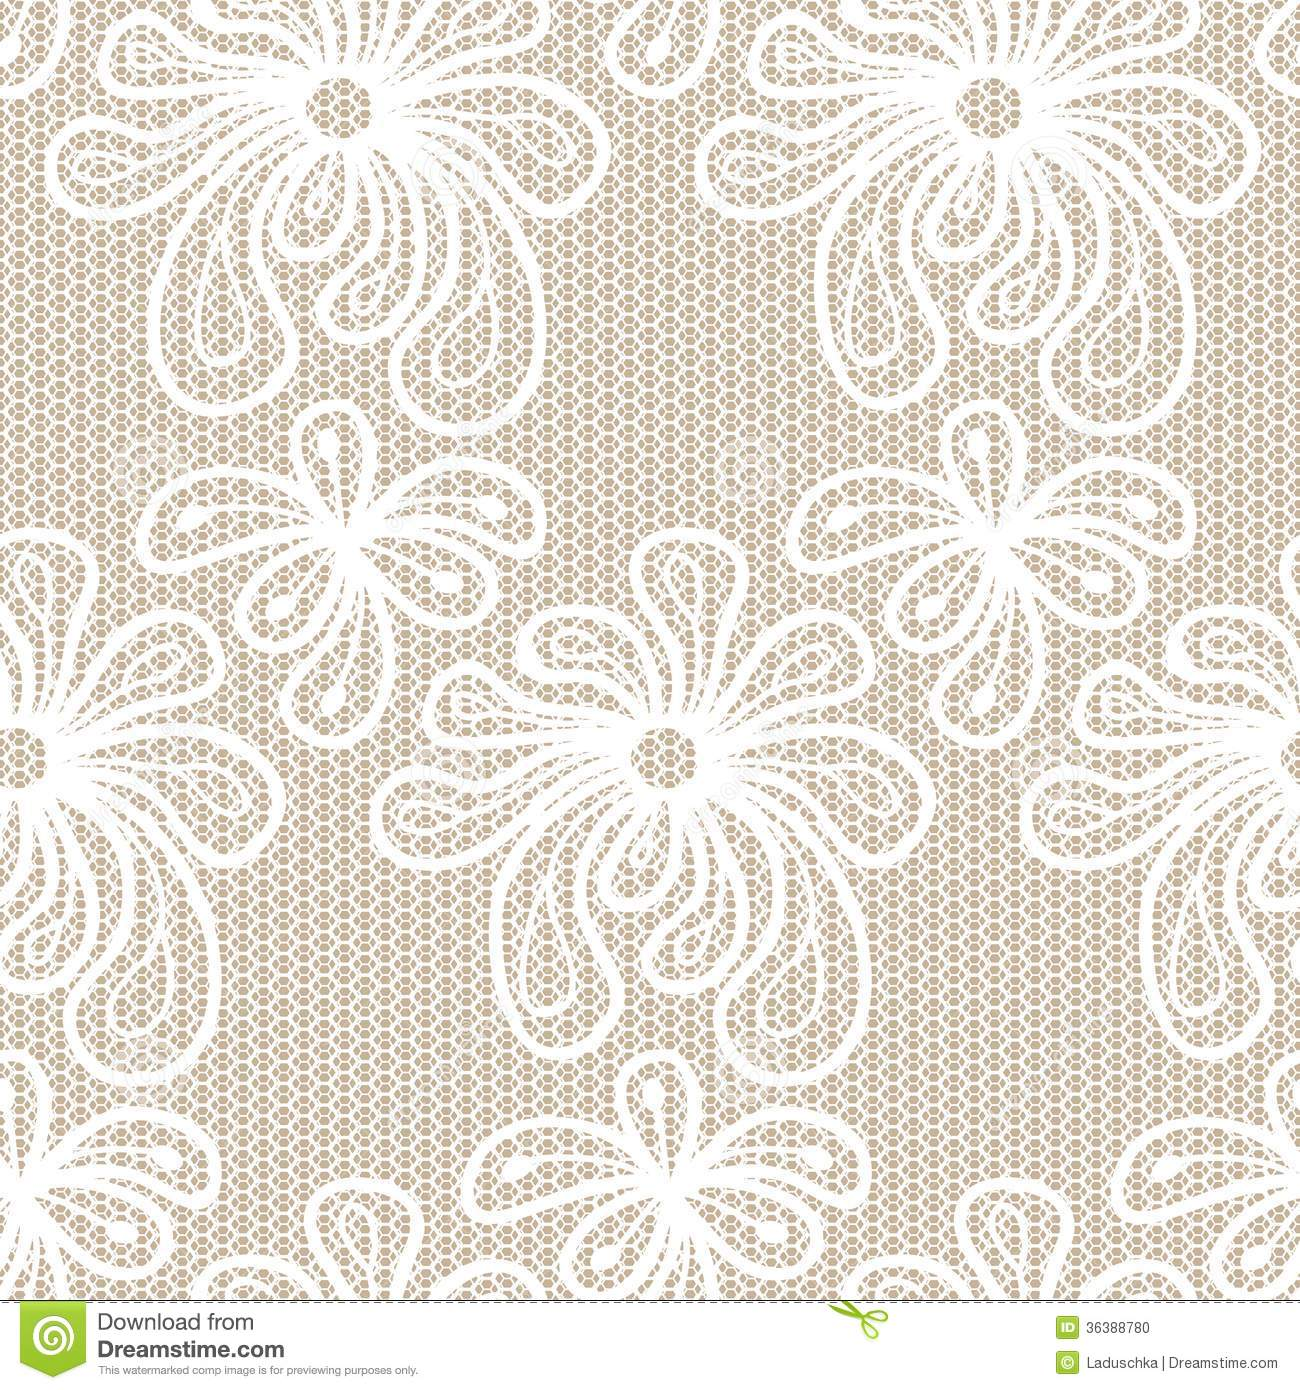 Pattern lace design overlay patterns patterns kid for Pattern overlay